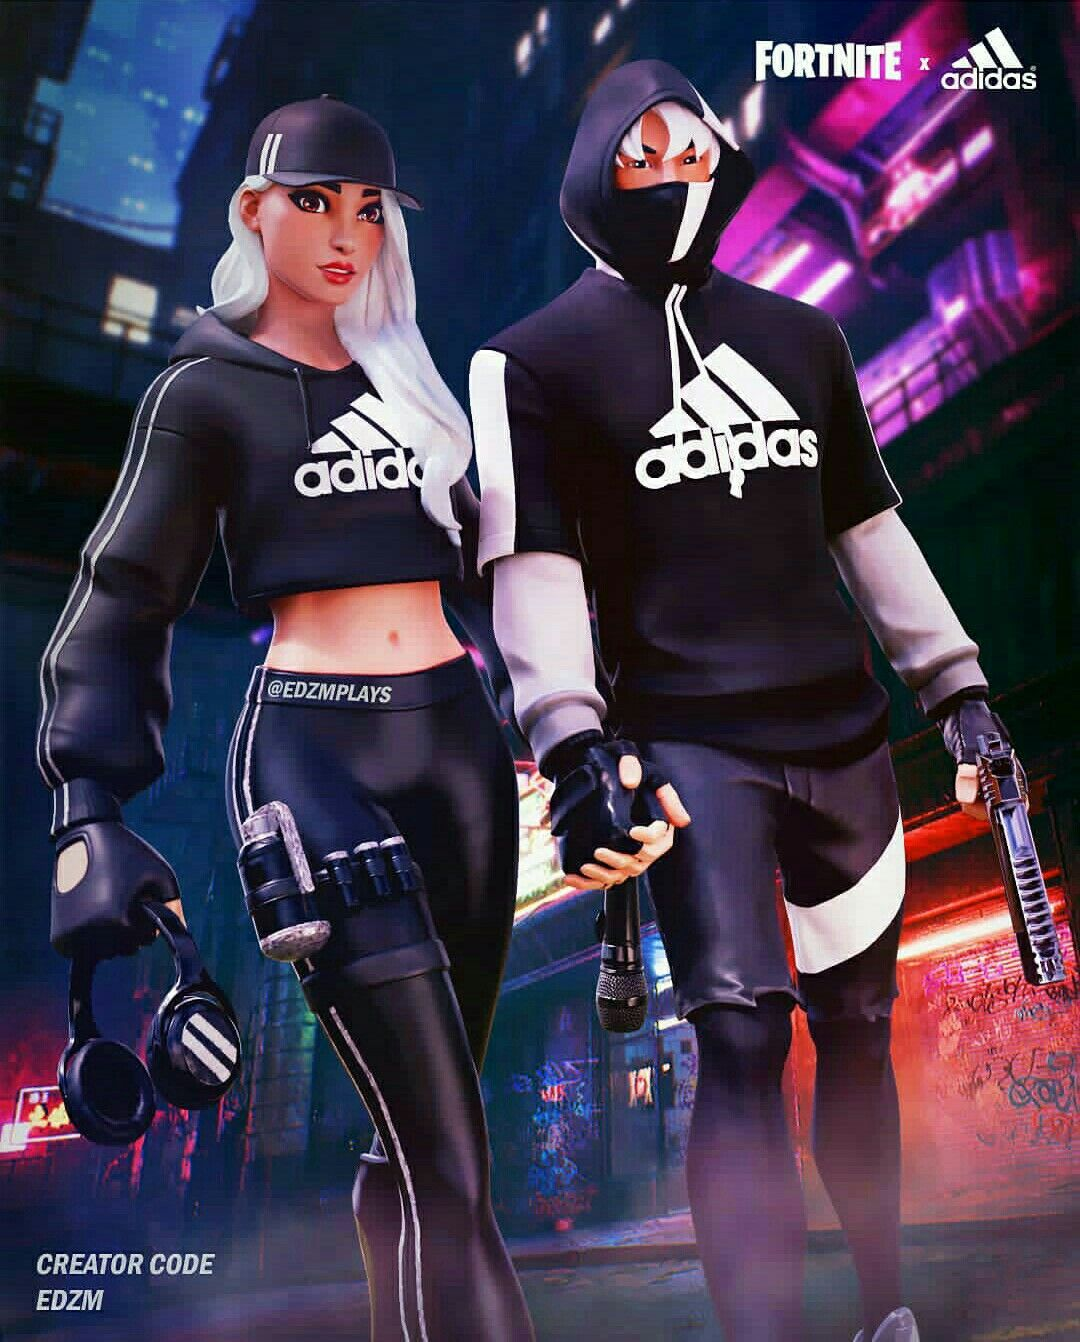 Adidadas Hole Day Gaming Wallpapers Best Gaming Wallpapers Game Wallpaper Iphone